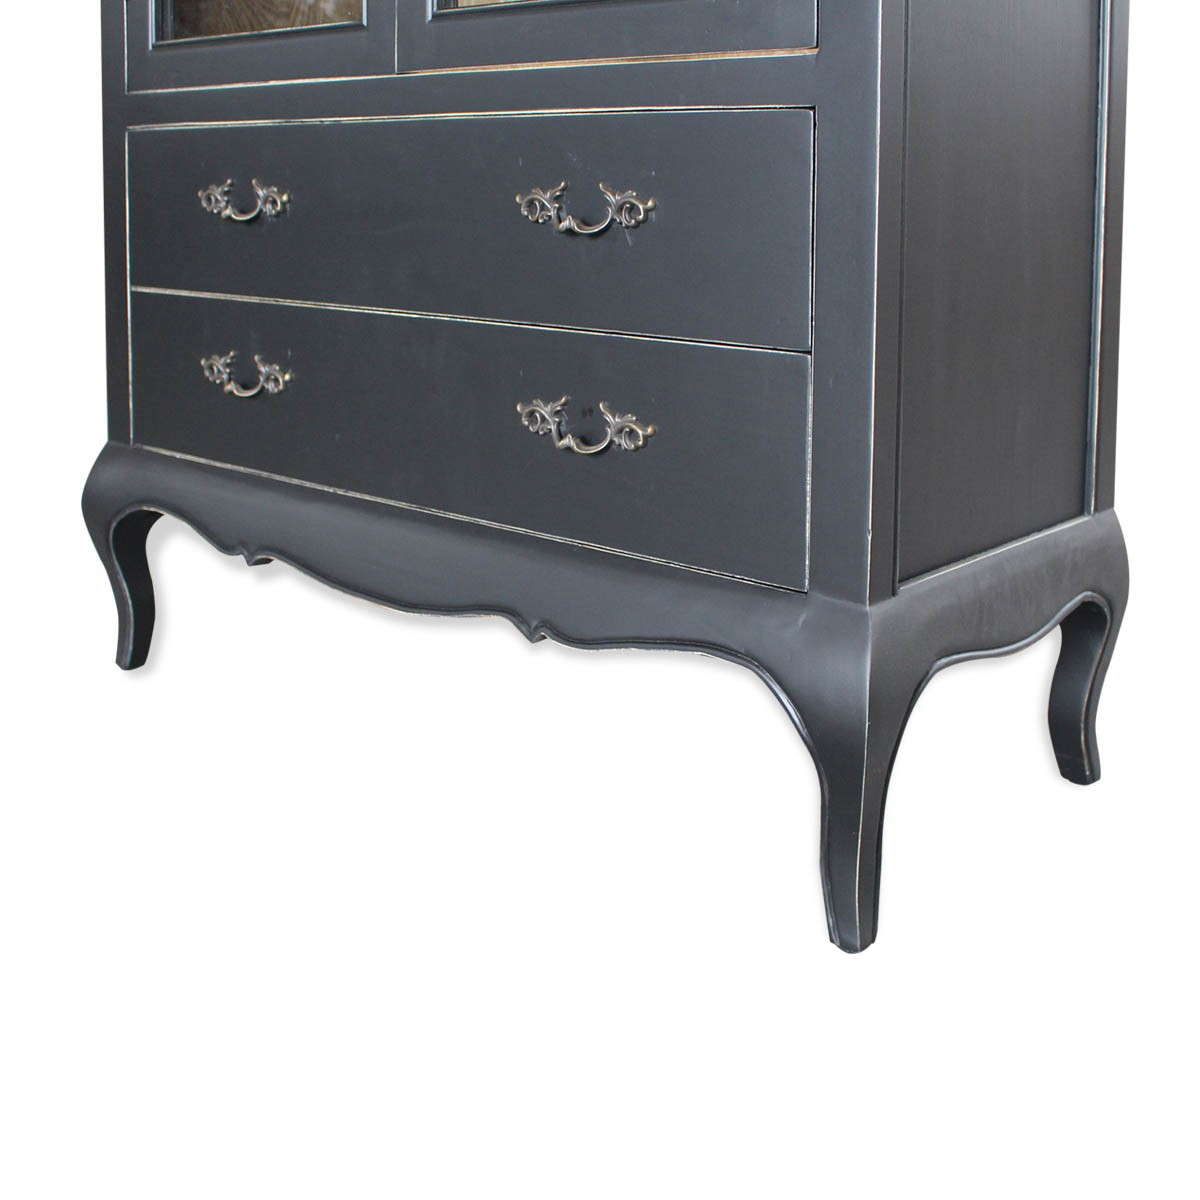 Genial ... French Provincial Furniture Display Cabinet In Black ...